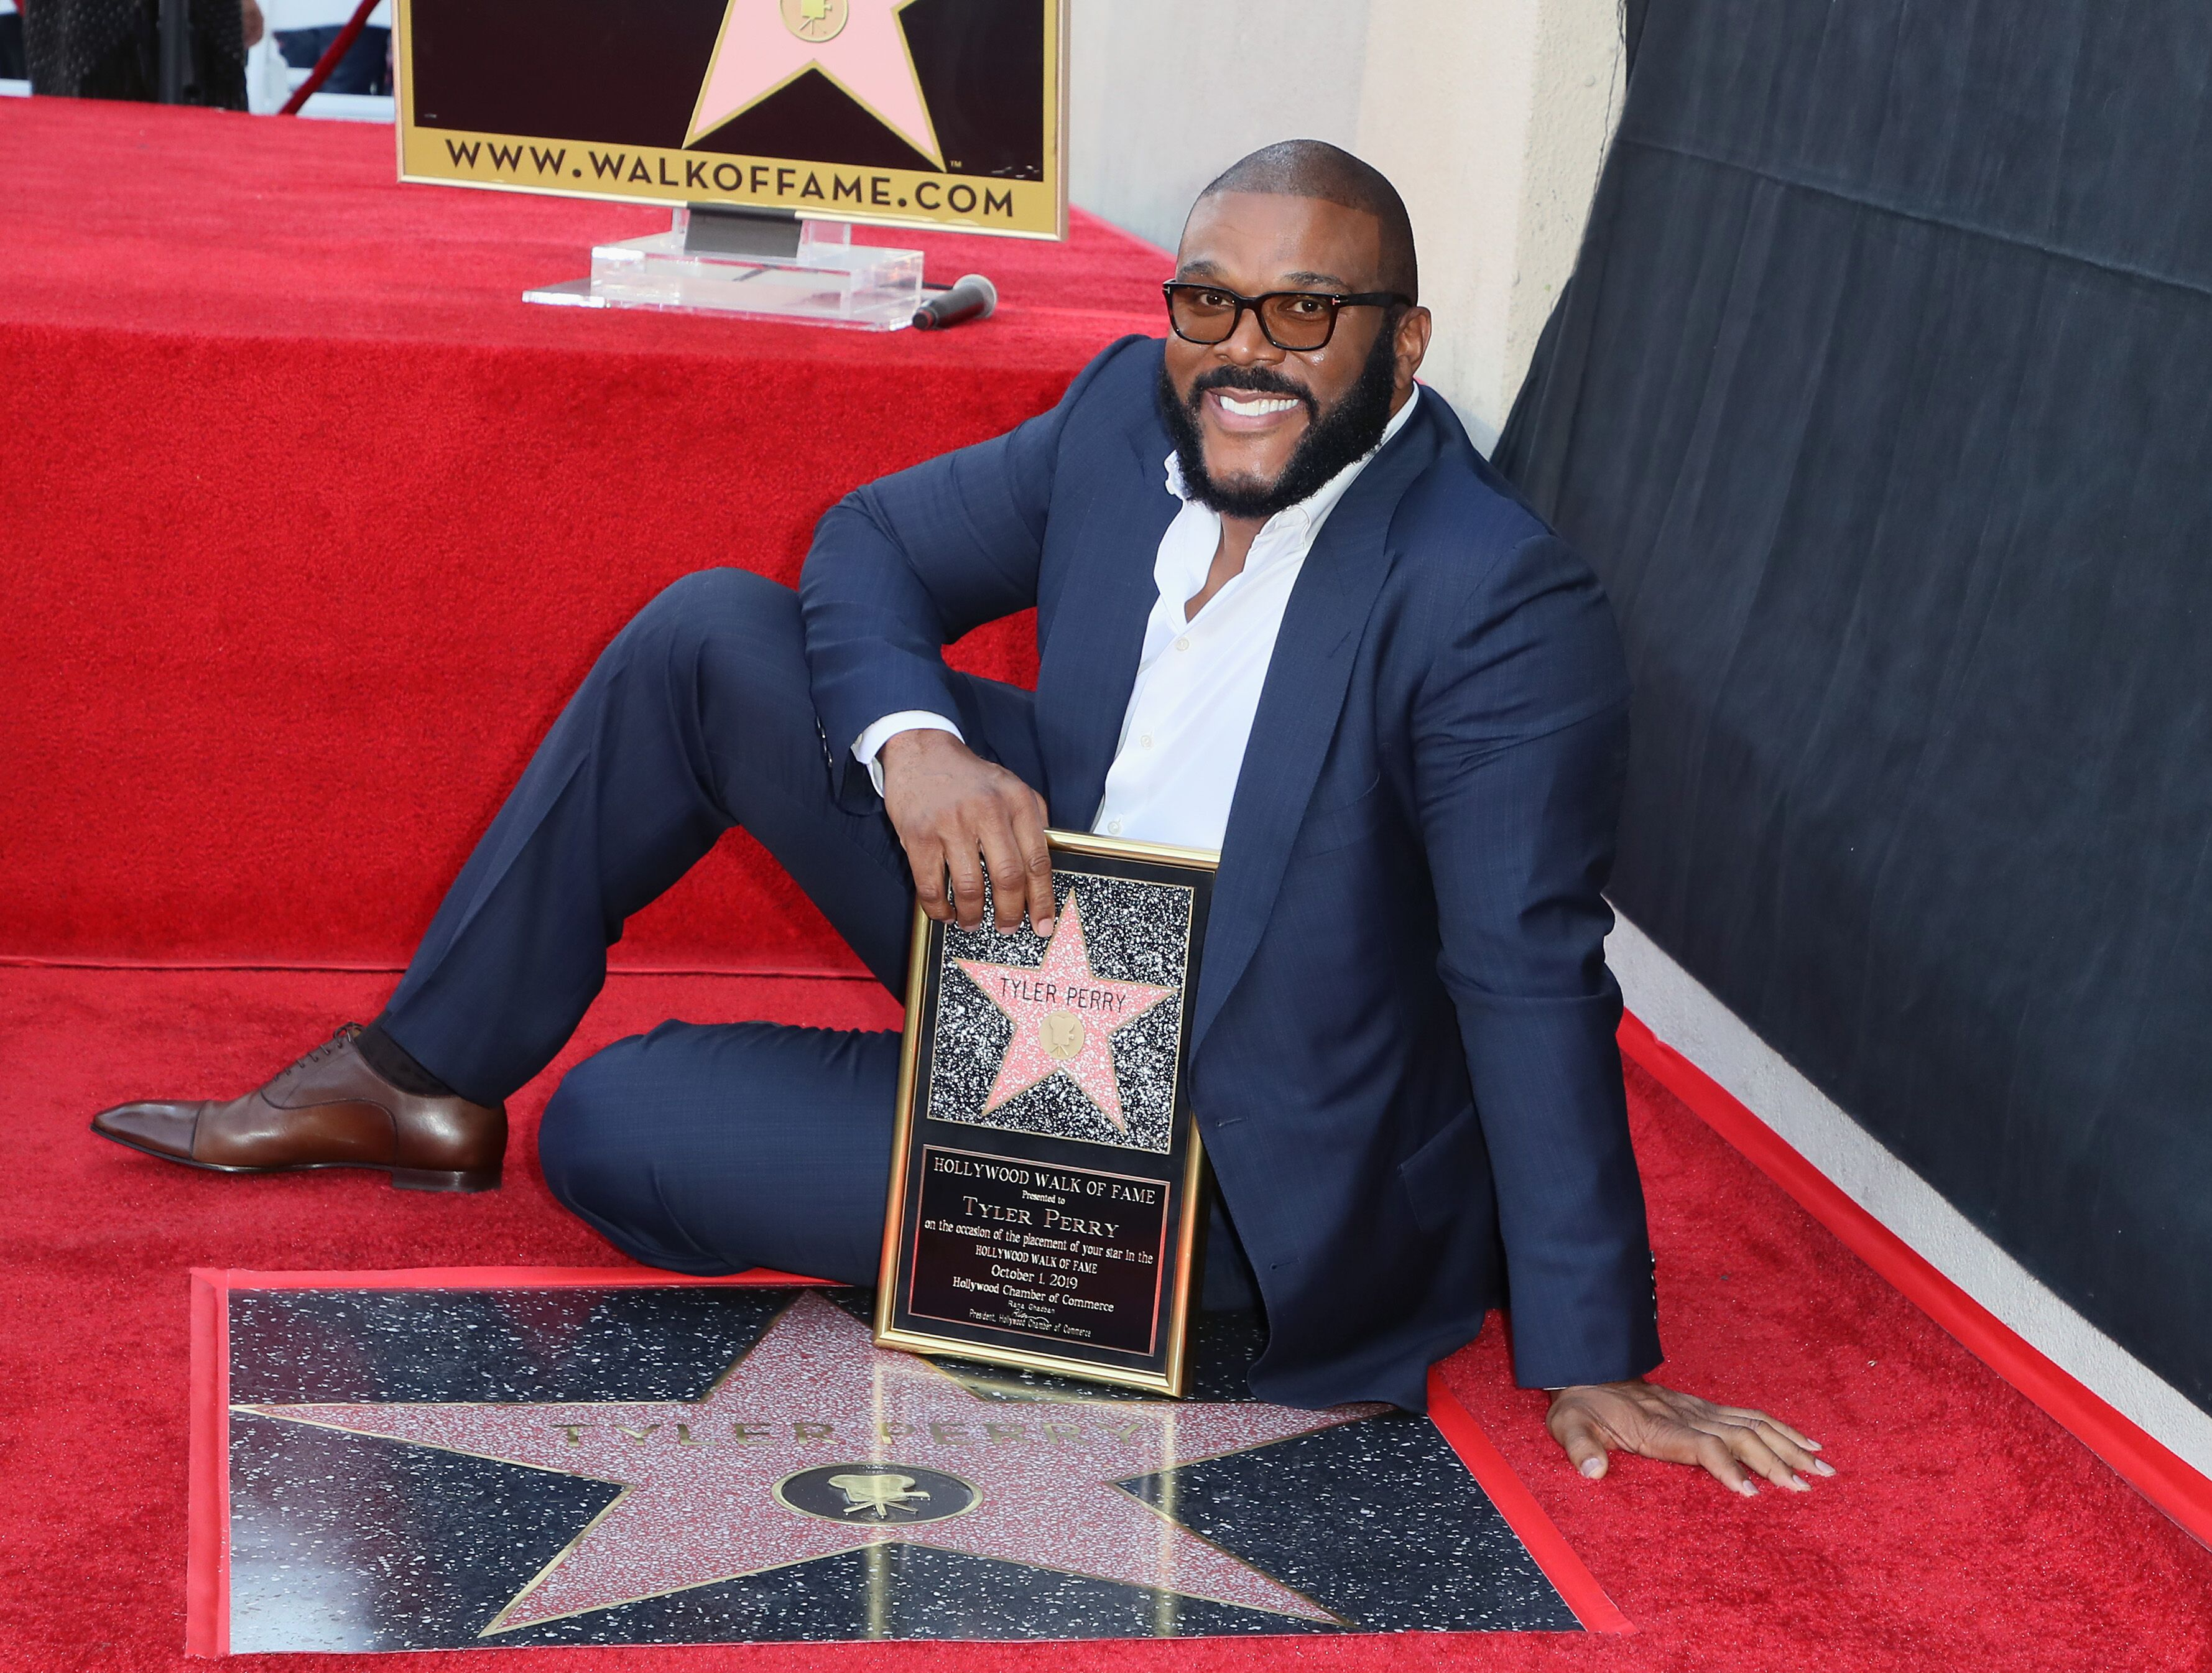 Tyler Perry Honored With Star On Hollywood Walk Of Fame held on October 1, 2019 in Hollywood. | Photo: Getty Images